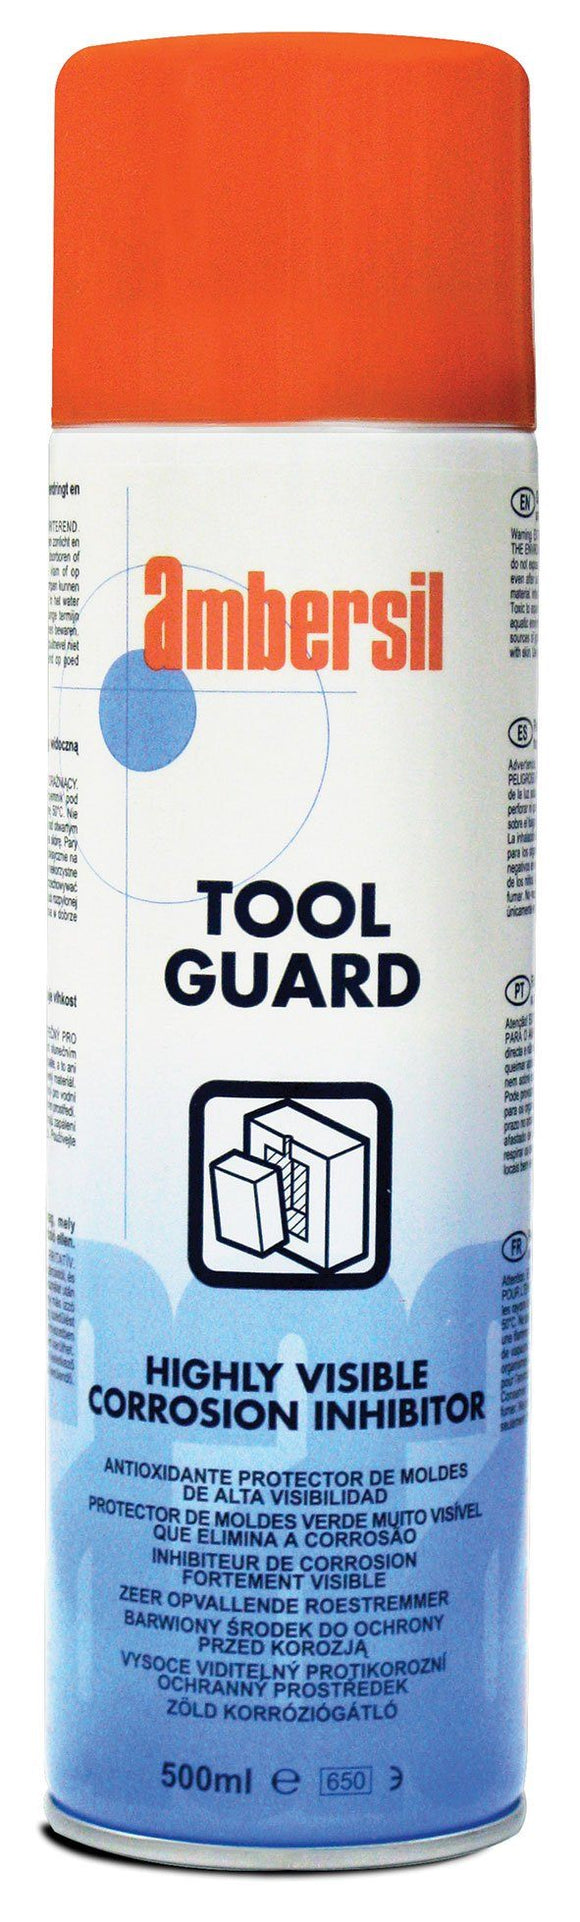 Mould_Sprays_and_lubricants - Tool Guard Protective